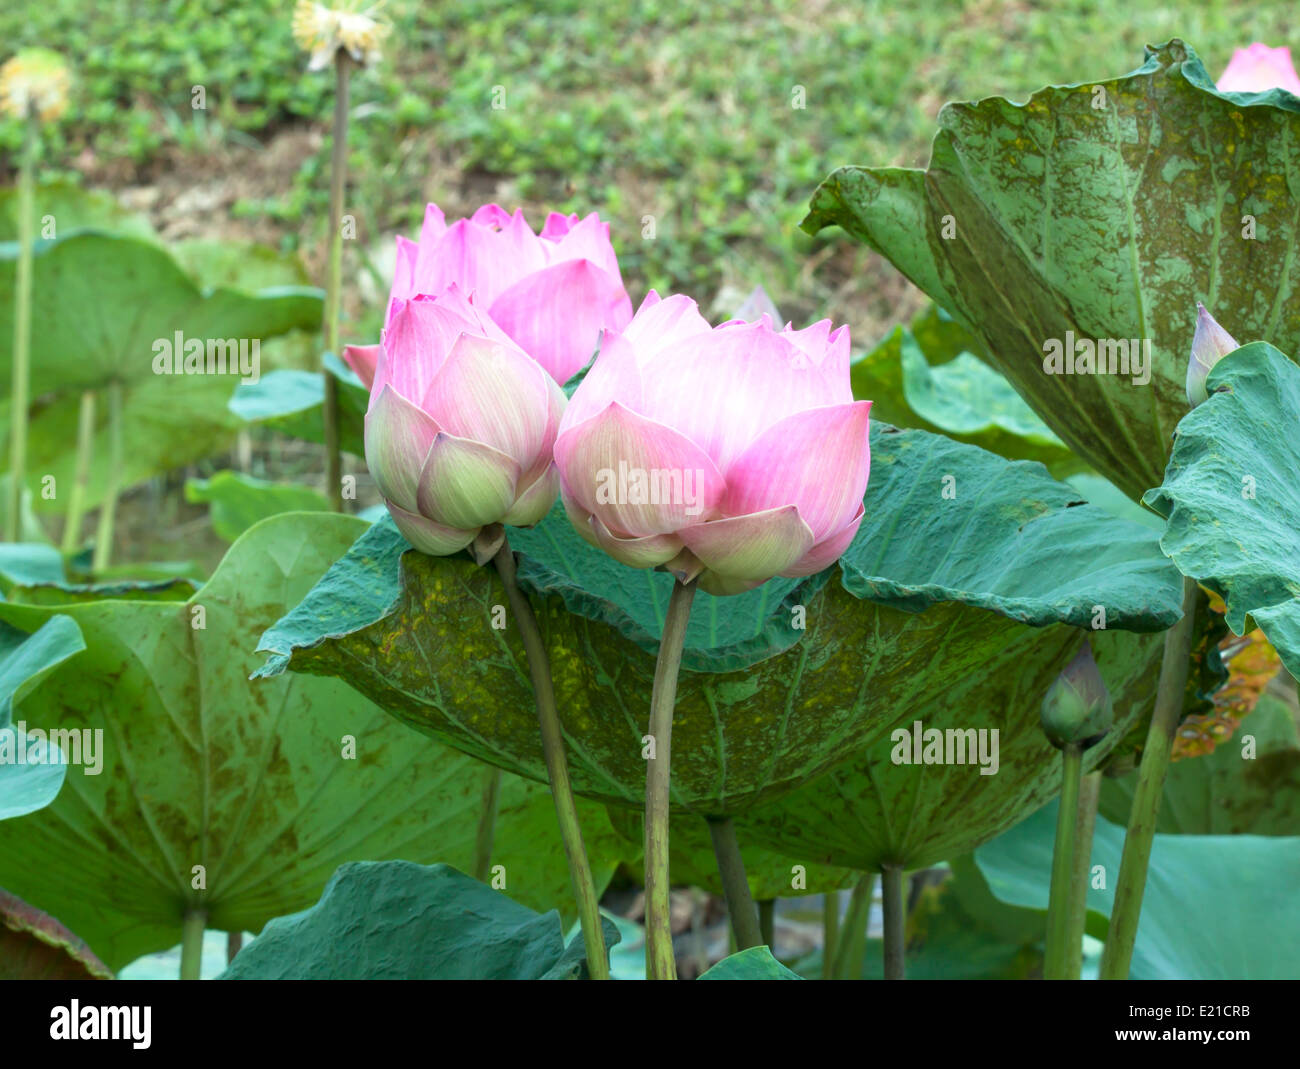 Pink Lotus Flower Blooming Stock Photos Pink Lotus Flower Blooming